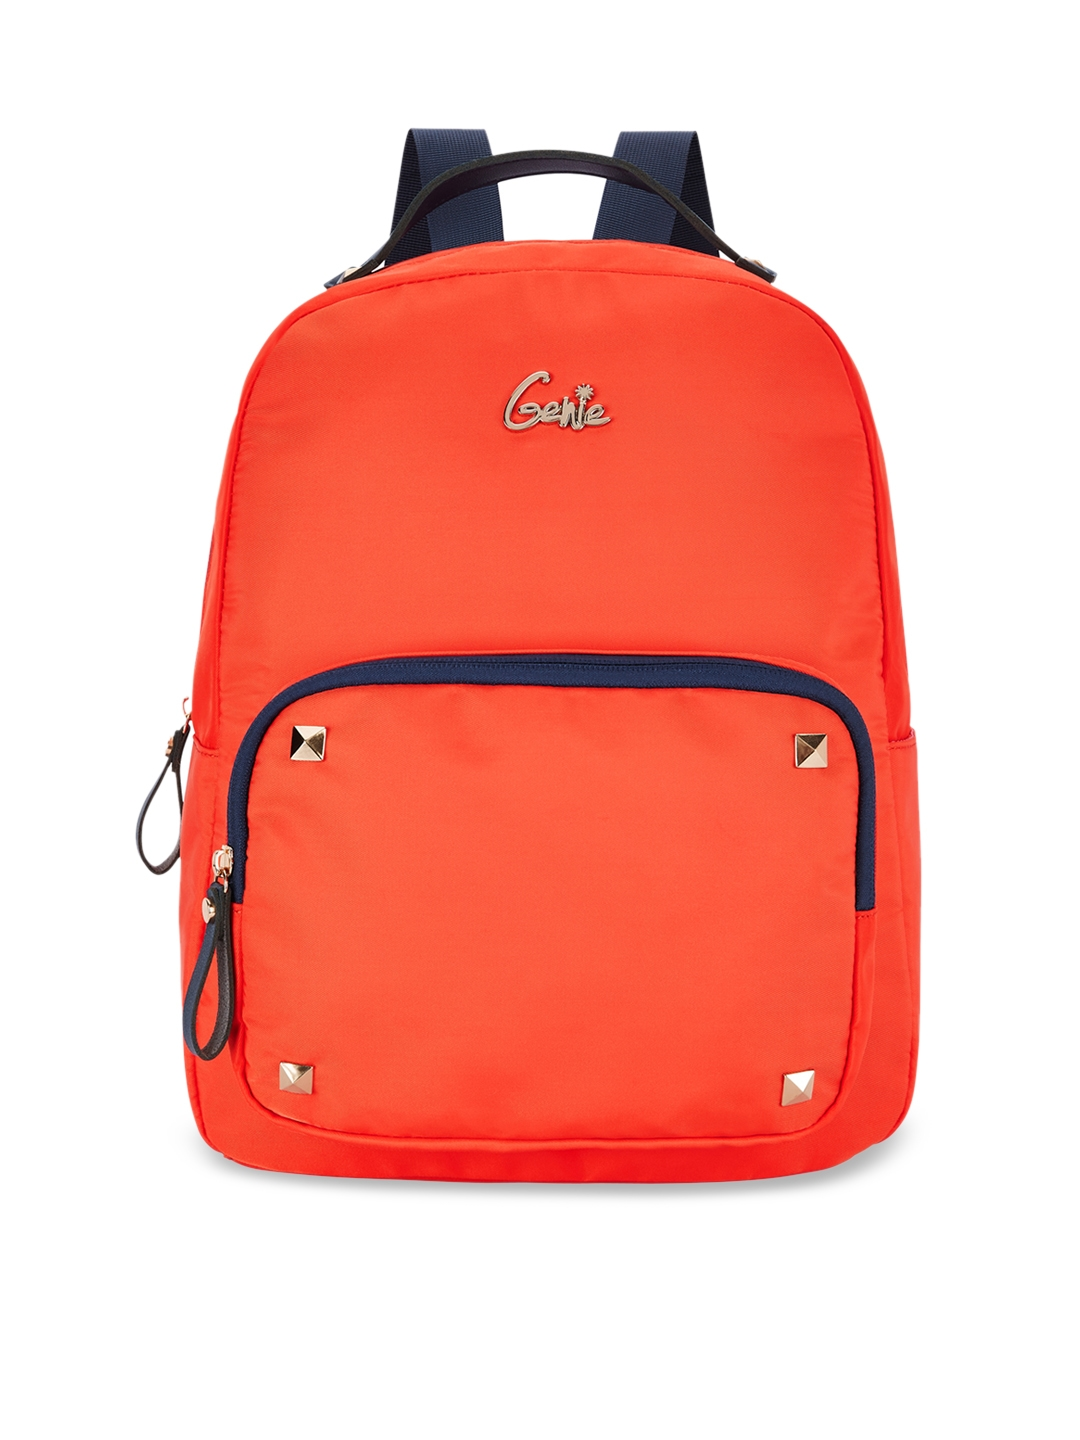 Genie Women Coral Orange 15 inches Solid Small Backpack